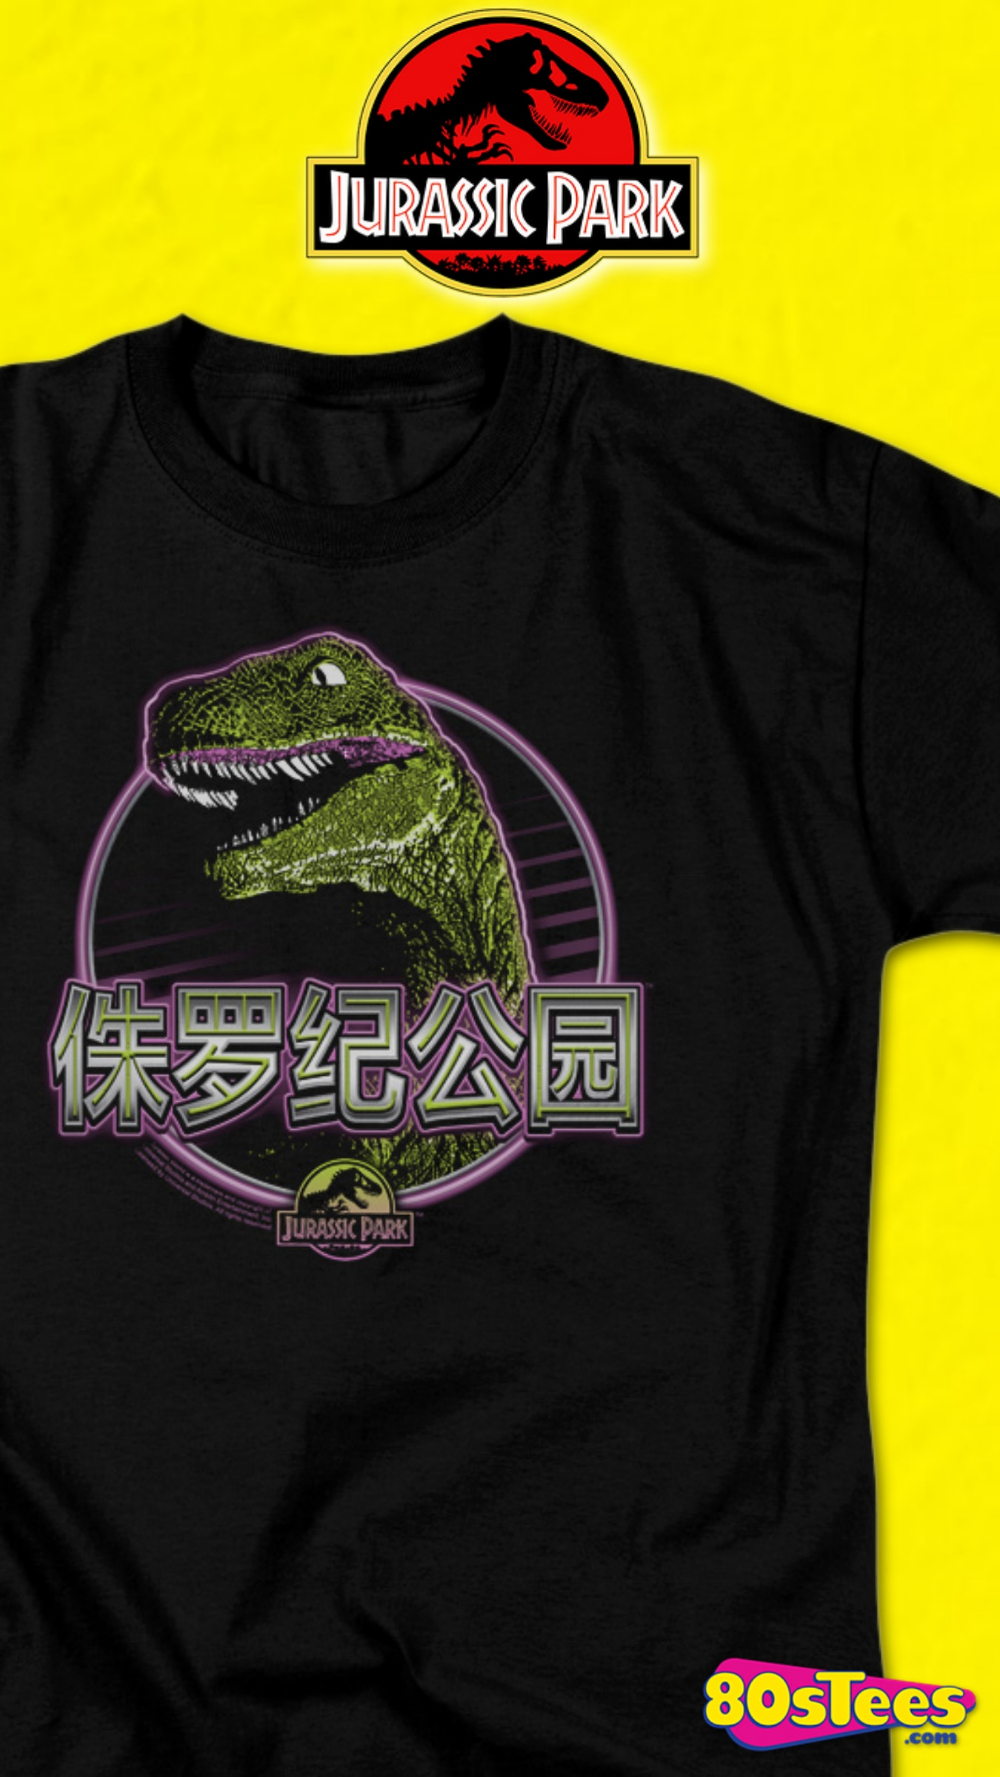 This Jurassic Park T Shirt Features An Image Of A Velociraptor And Japanese Text In The 1993 Blockbuster Jurassic Jurassic Park T Shirt Jurassic Park T Shirt